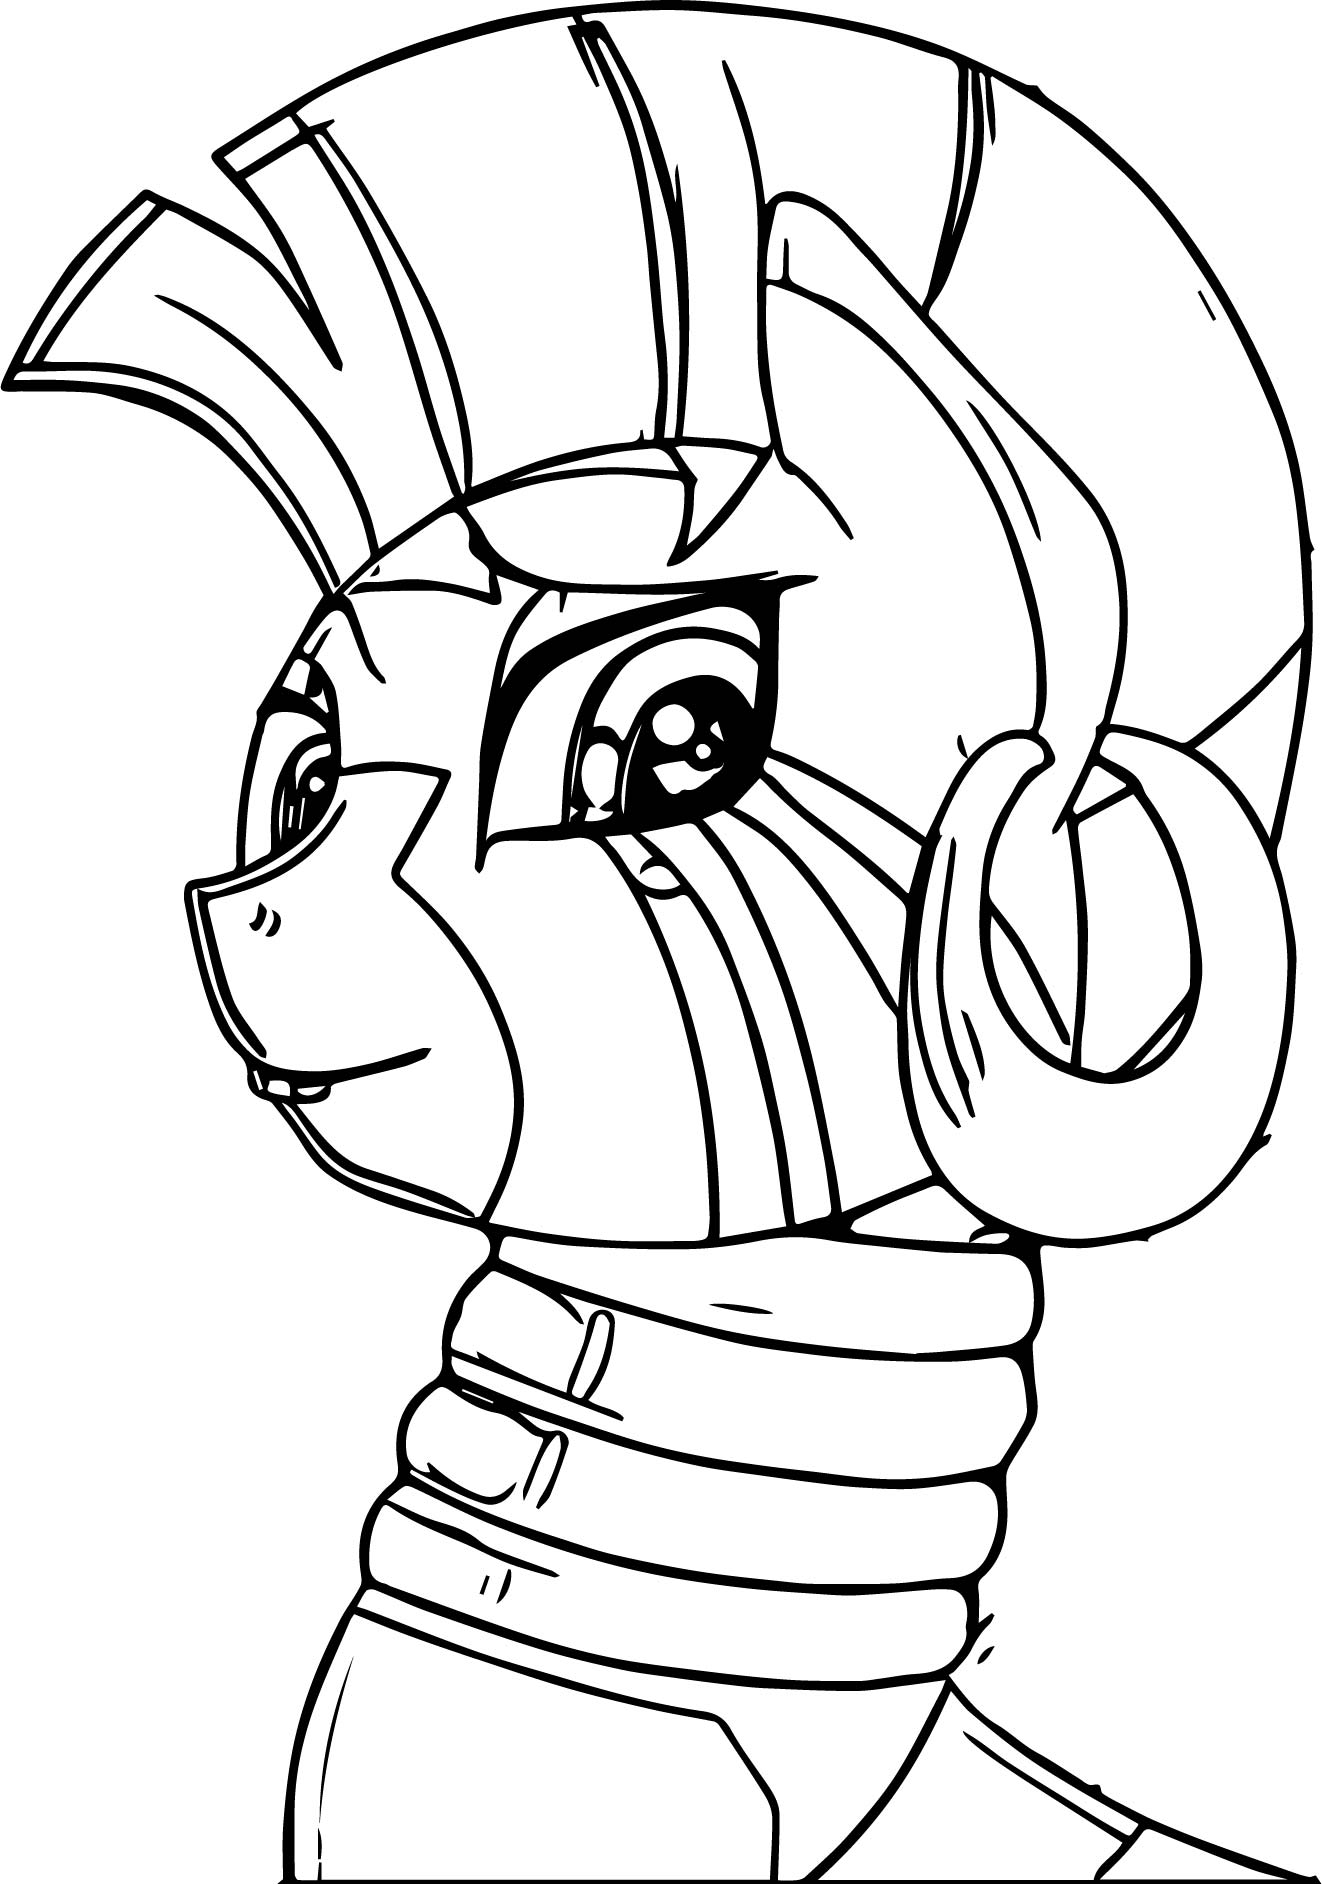 My Little Pony Zecora Coloring Pages : Zecora looking coloring pages wecoloringpage